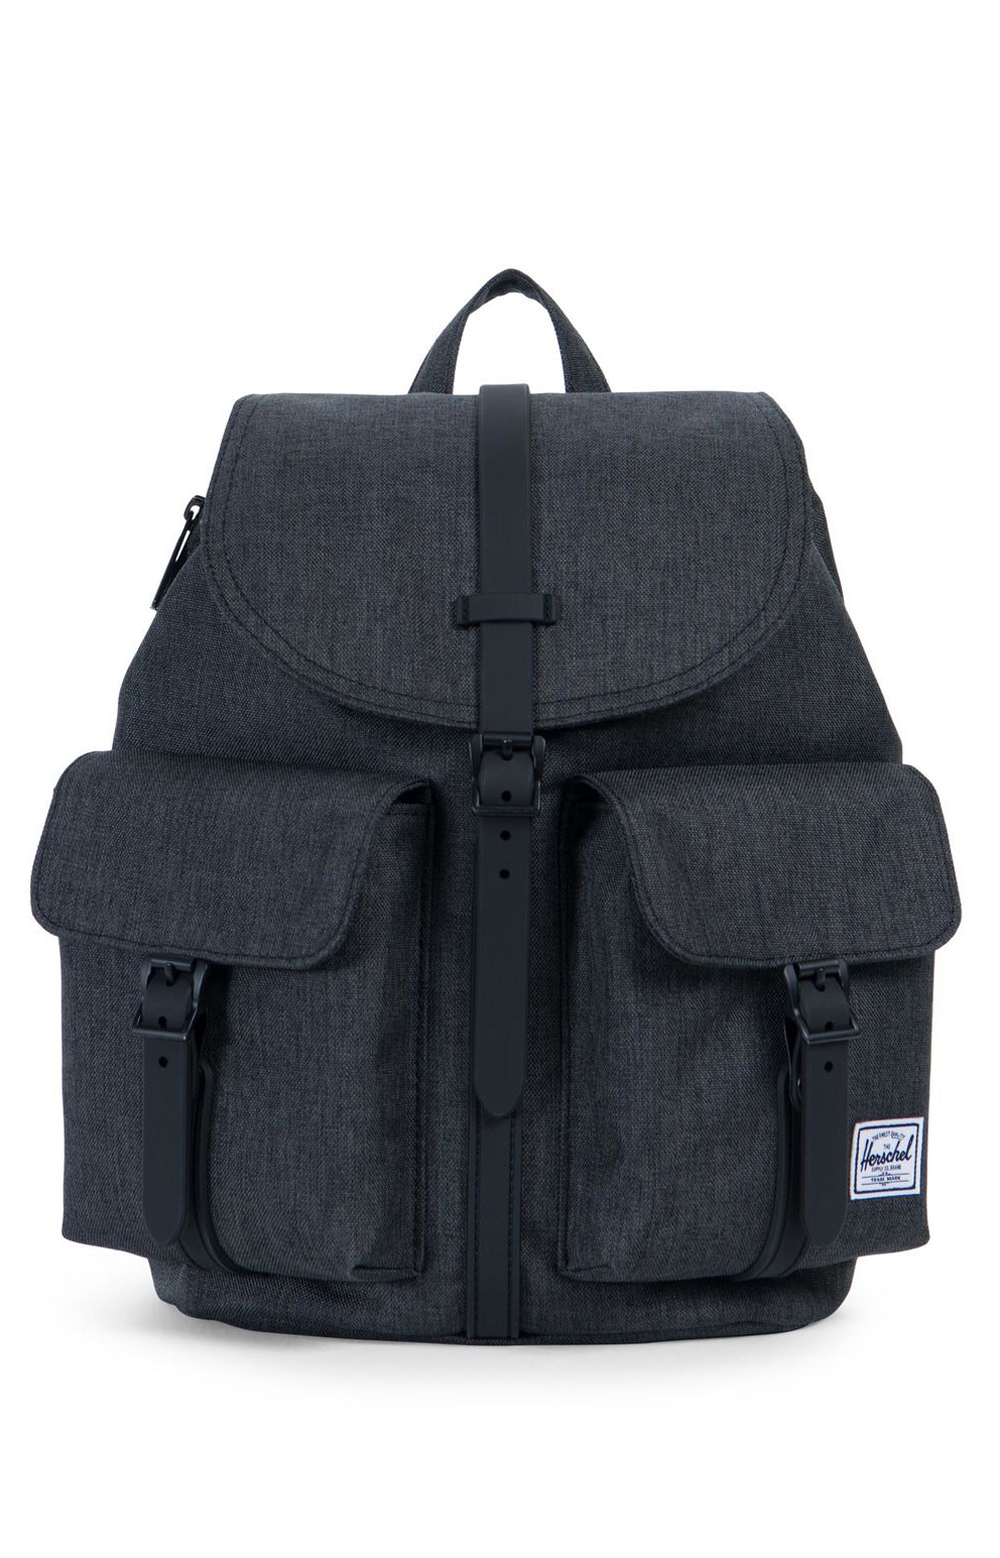 Dawson XS Backpack - Black X